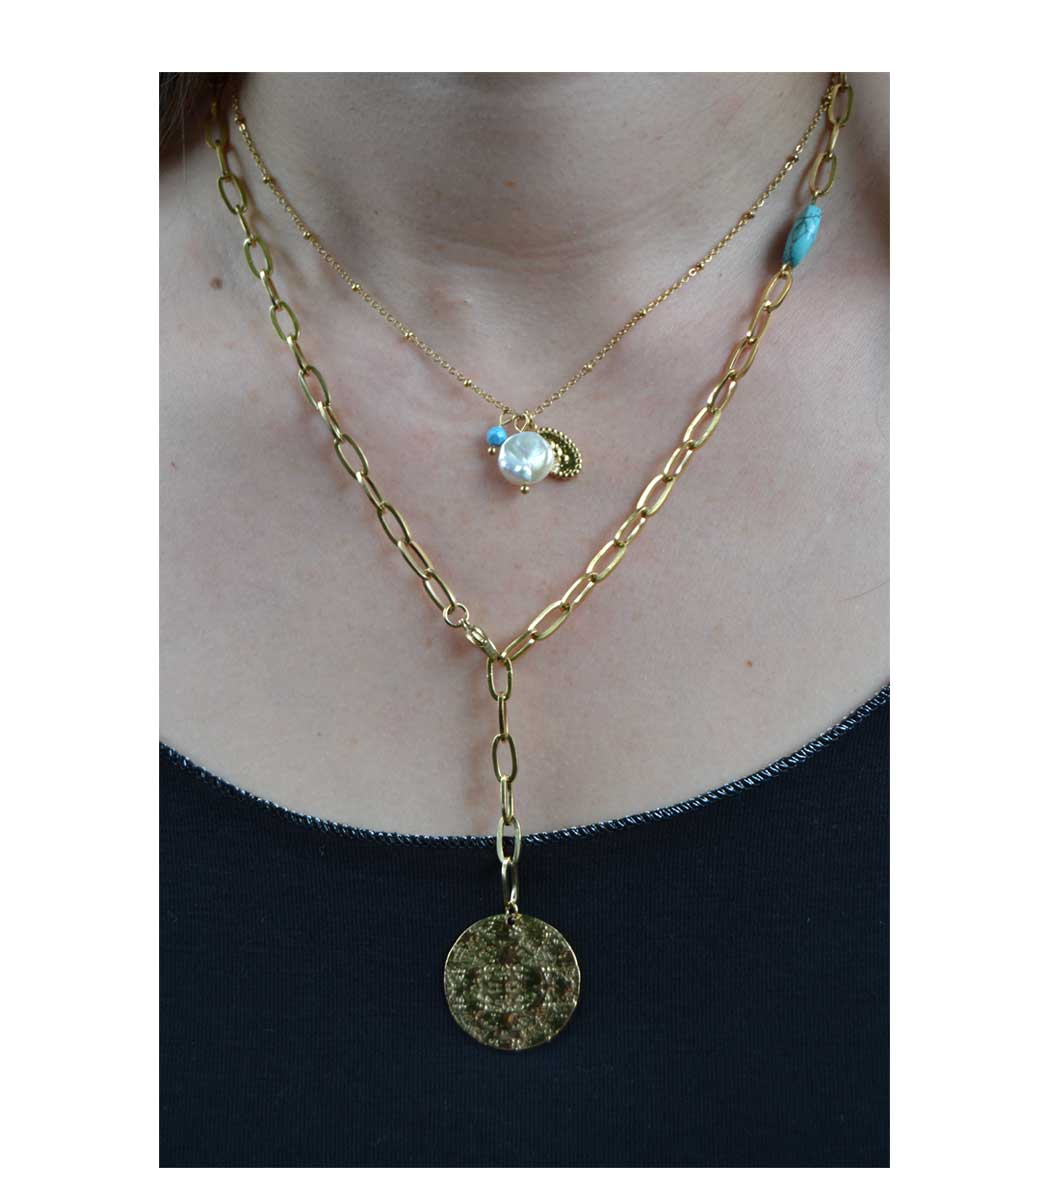 Stainless steel disc turquoise charm necklace